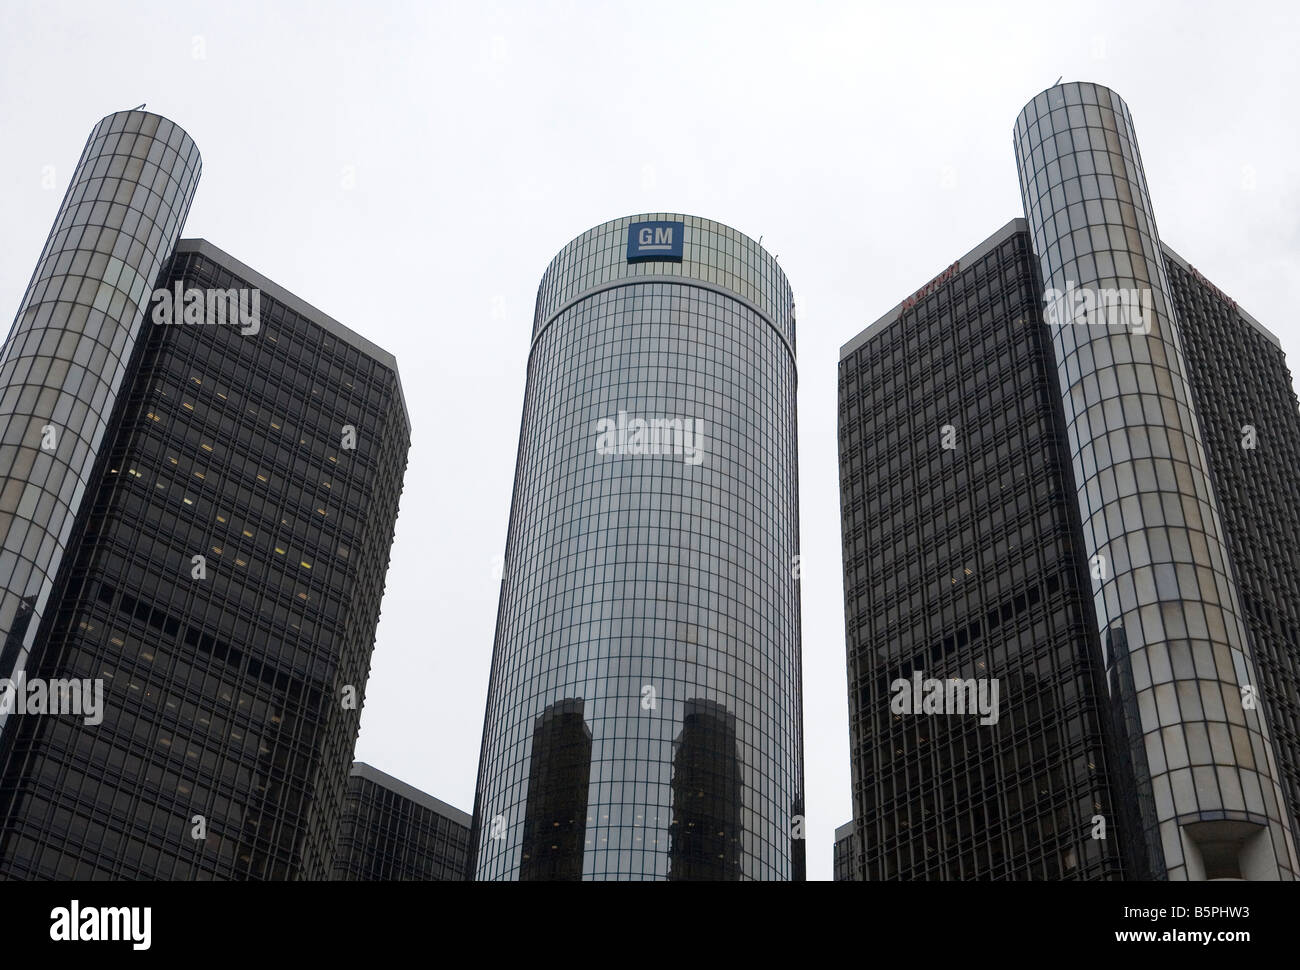 General Motors World Headquarters in Detroit, Michigan. Stock Photo